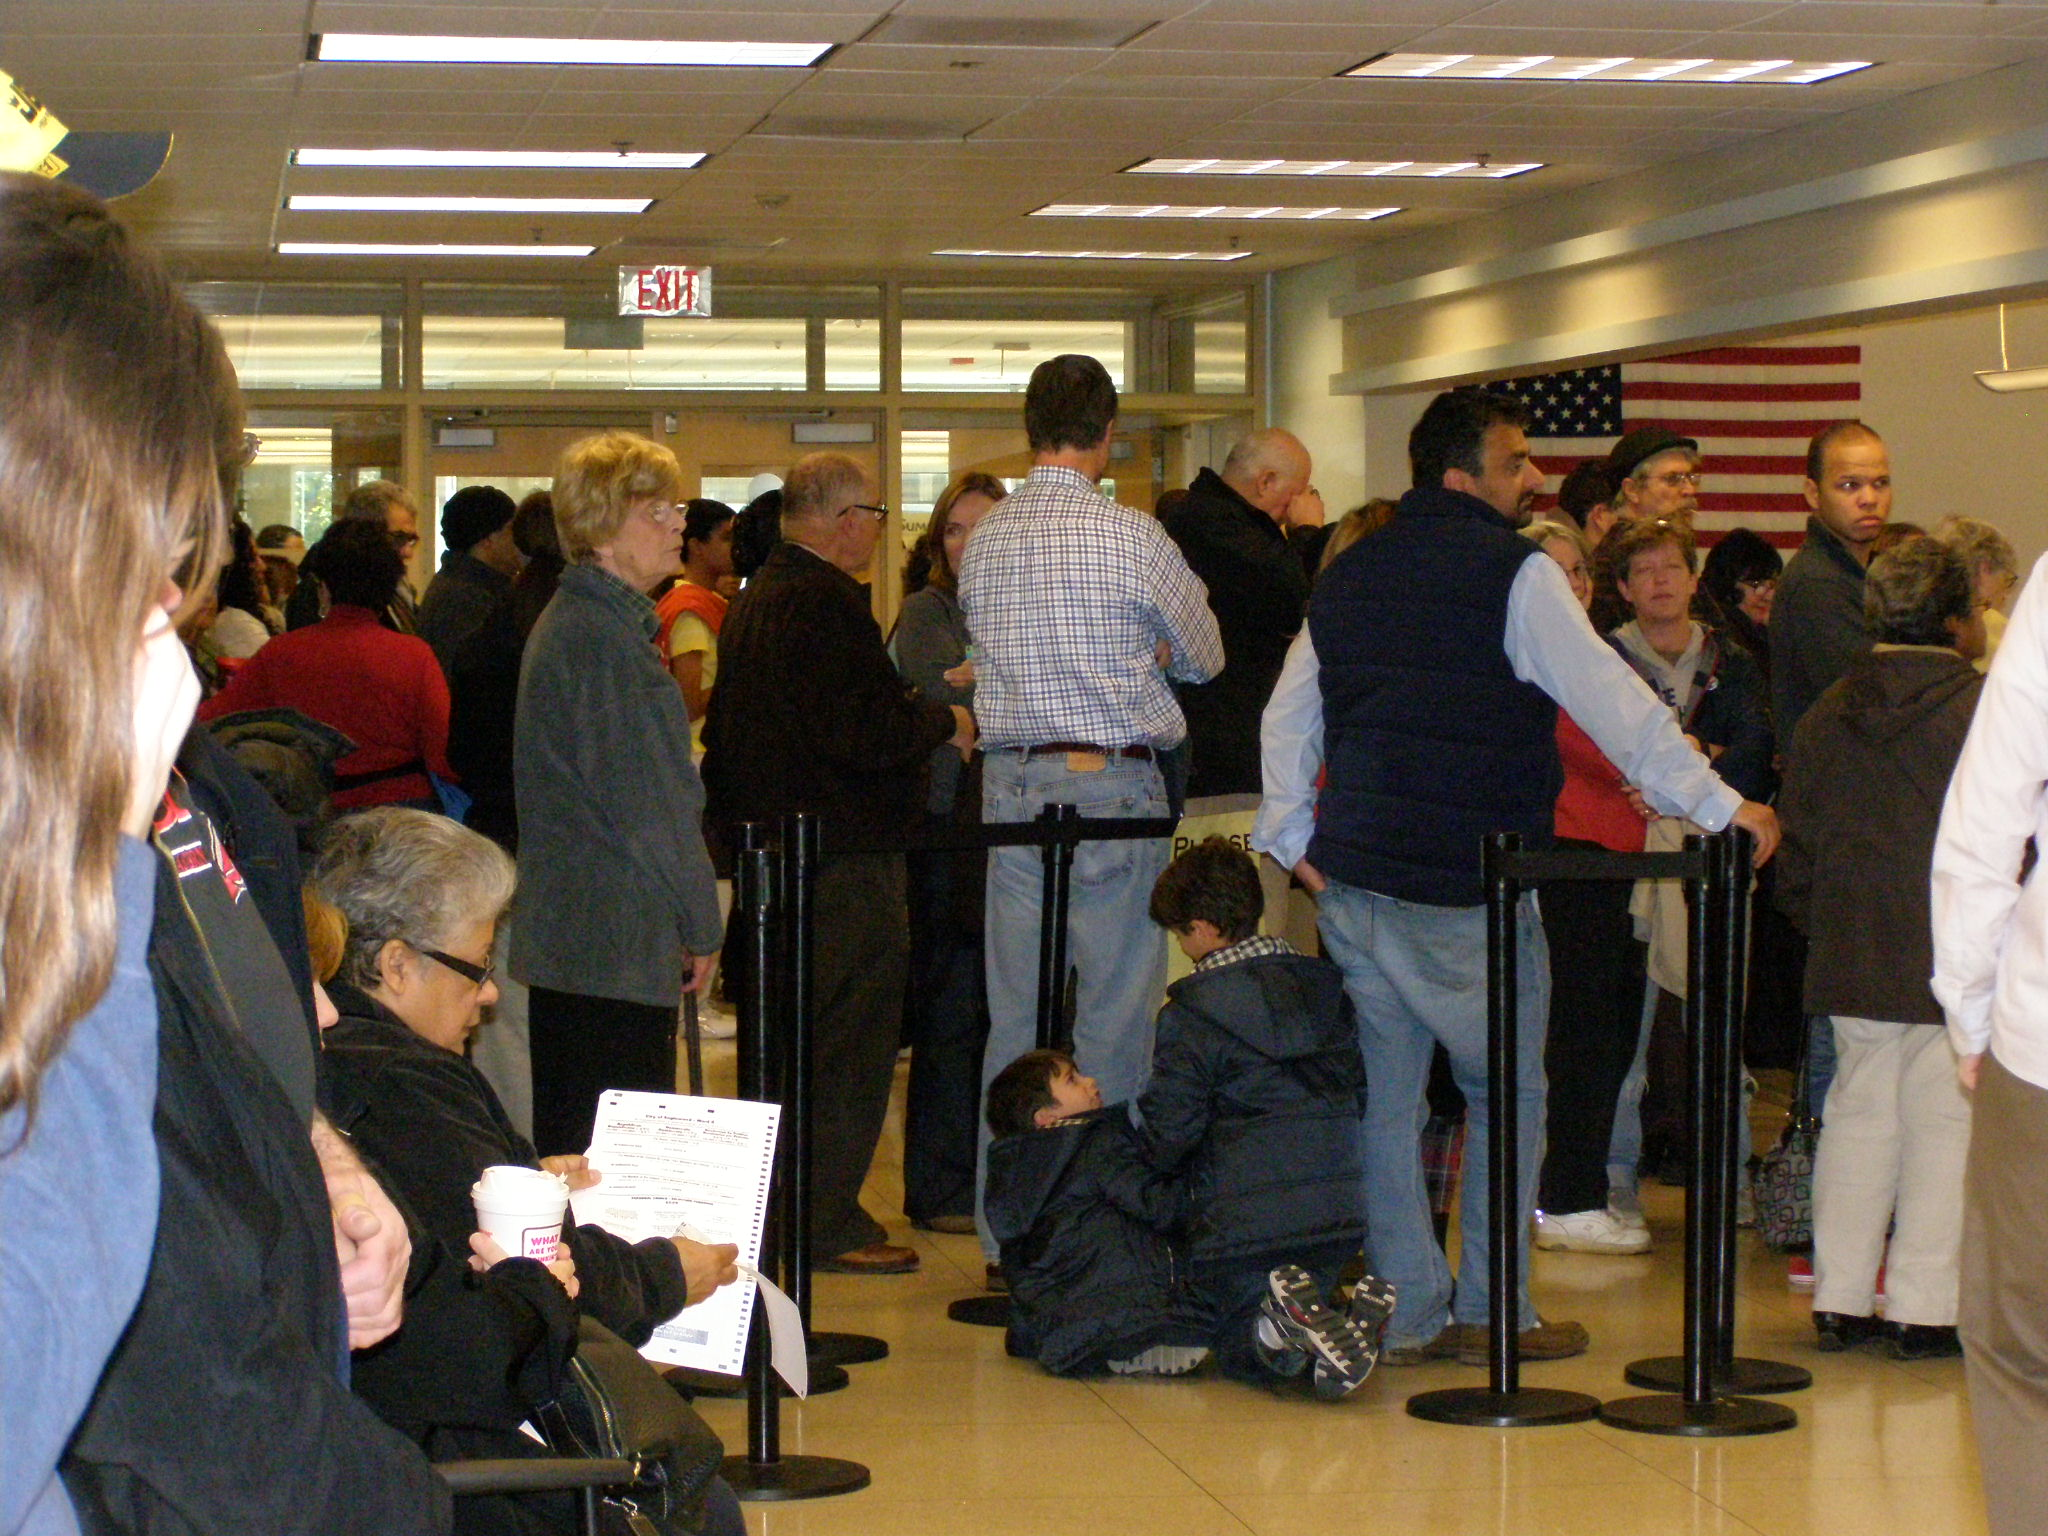 Hundreds wait to vote in person at Bergen County Clerk Nov 4 2012